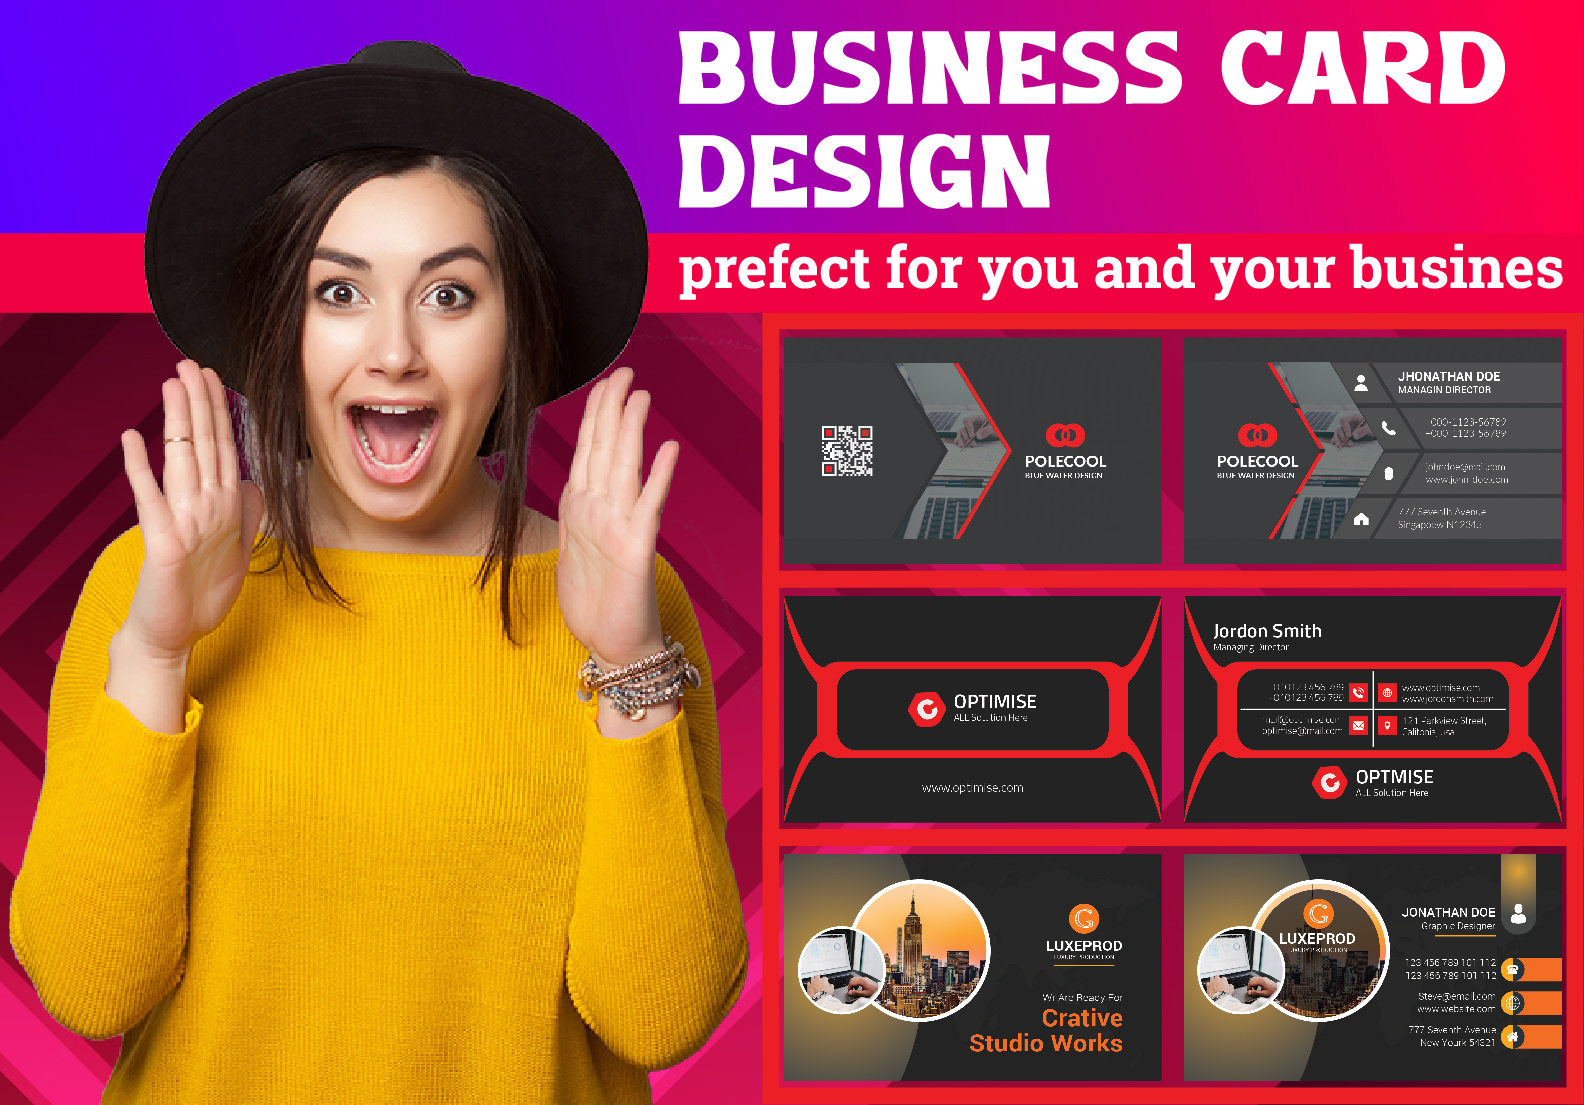 I will design unique double sided business card print ready files